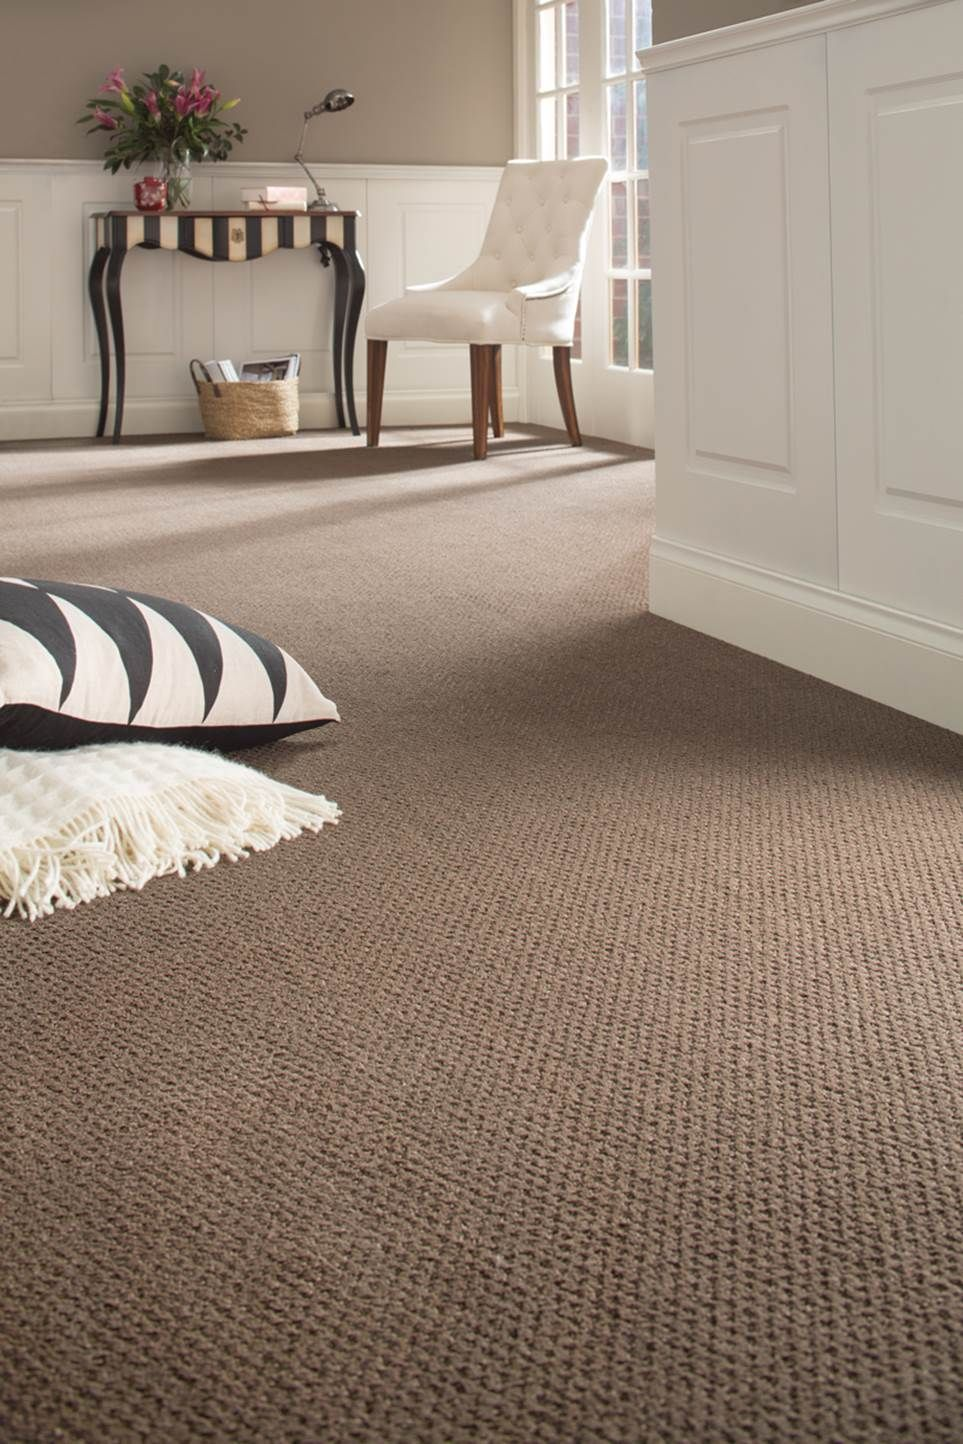 Durability Stain Resistance And Softness Are Key When Buying Carpet Especially When Children Are In The Mi Bedroom Carpet Colors Buying Carpet Rugs On Carpet